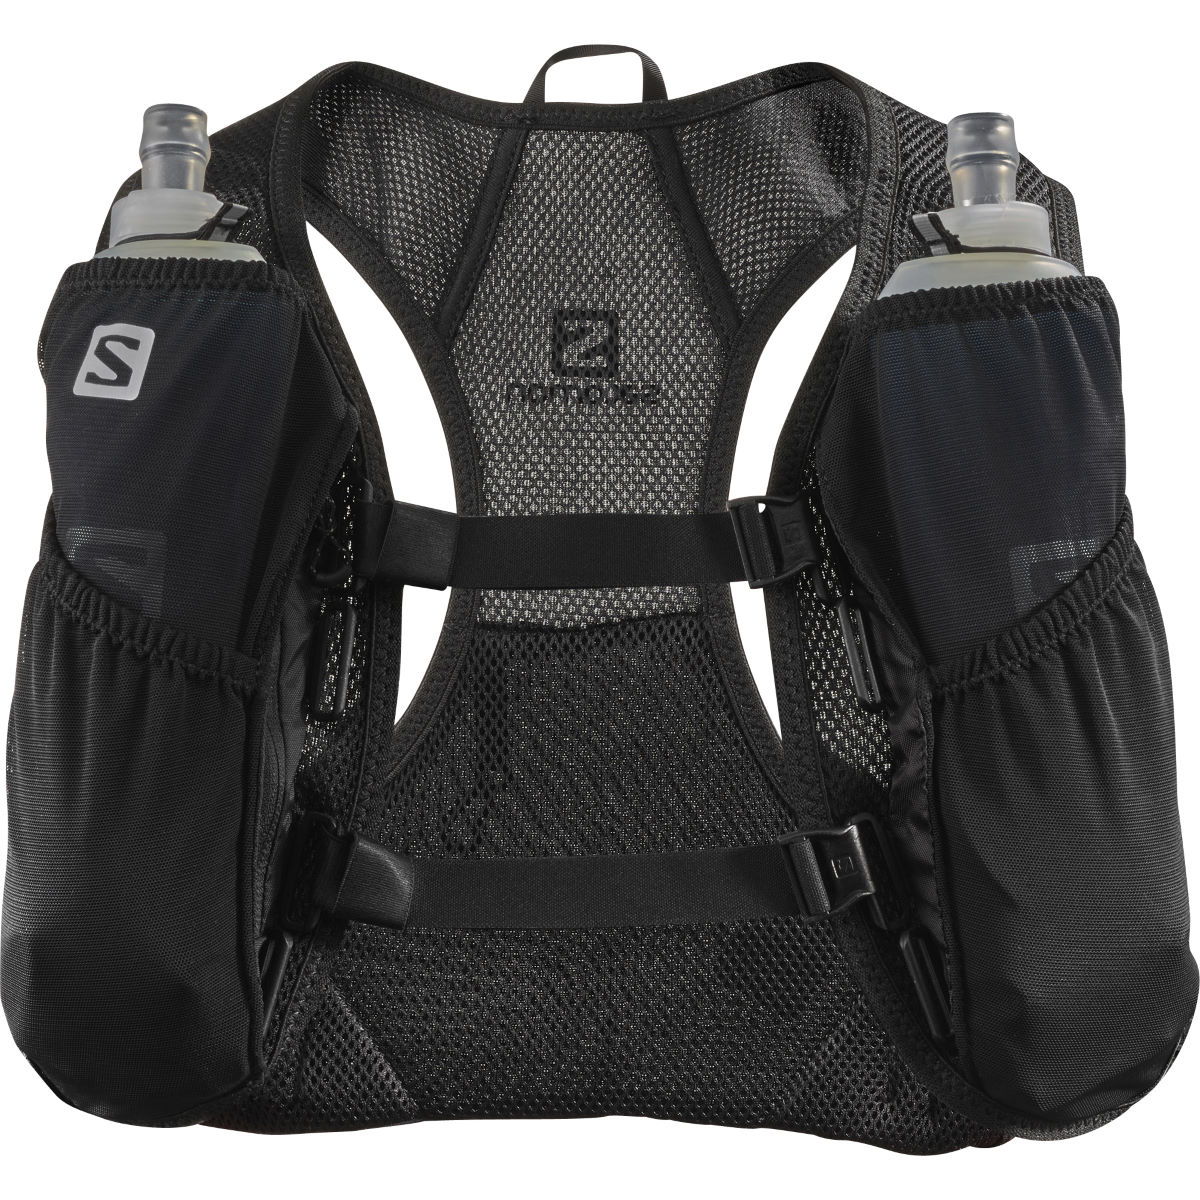 Salomon Agile 2 Set Hydration Pack